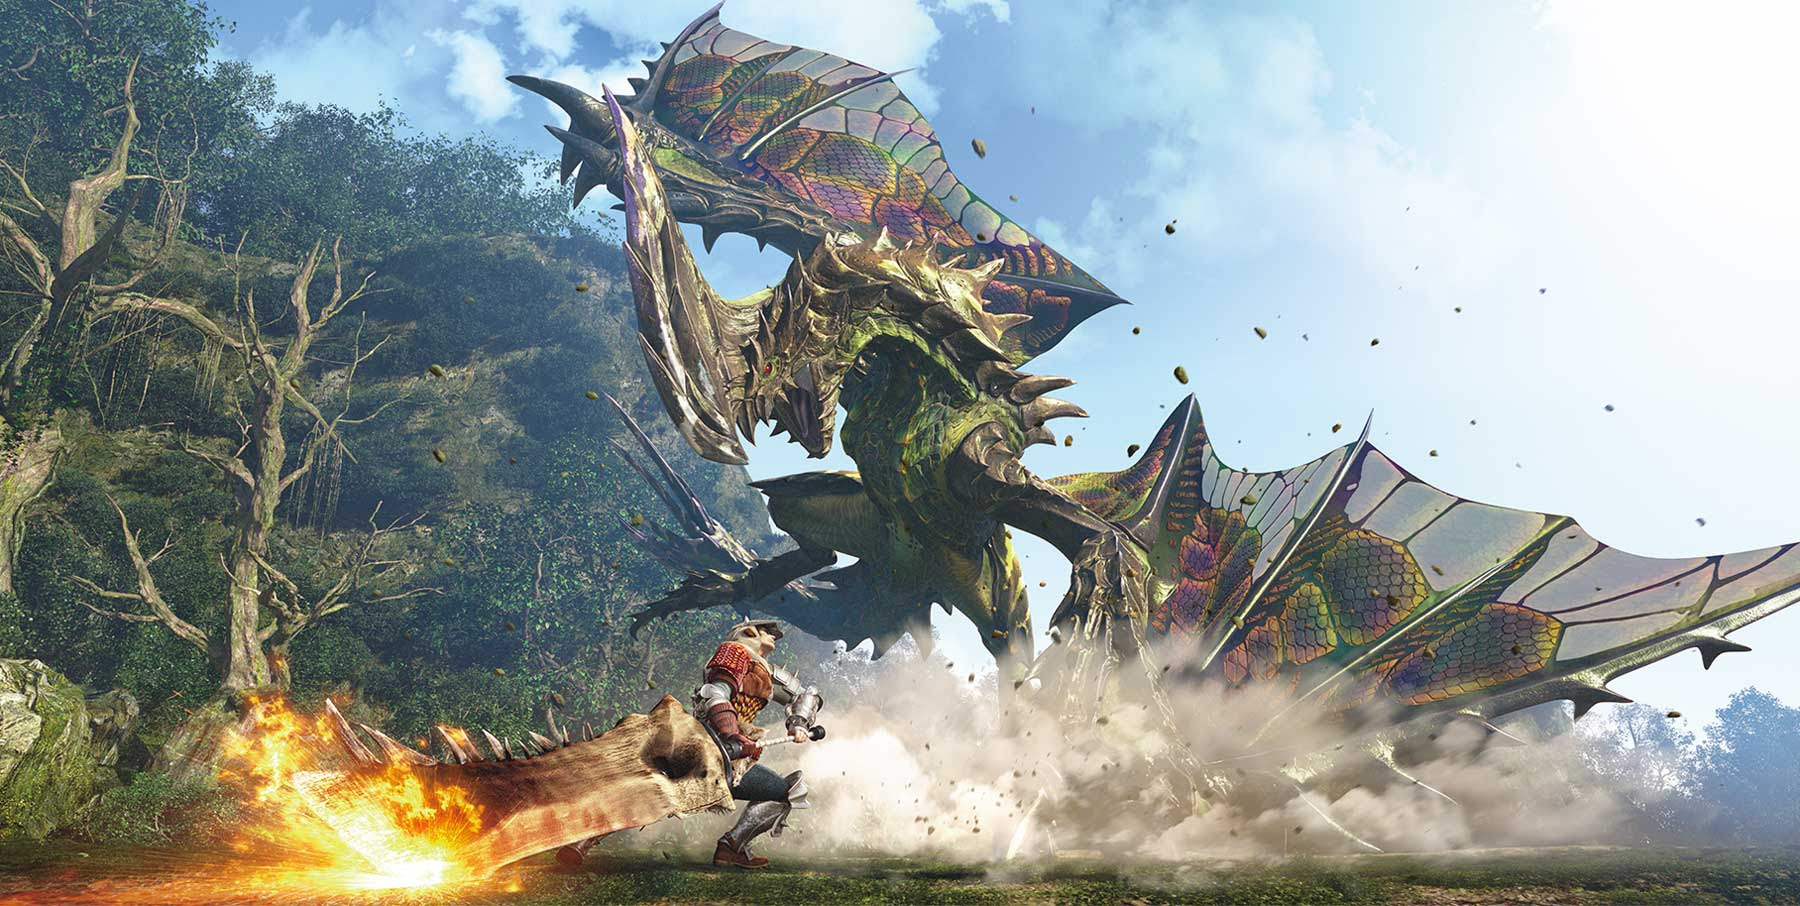 To hunt a God: The hidden appeal and payoff of Monster Hunter screenshot